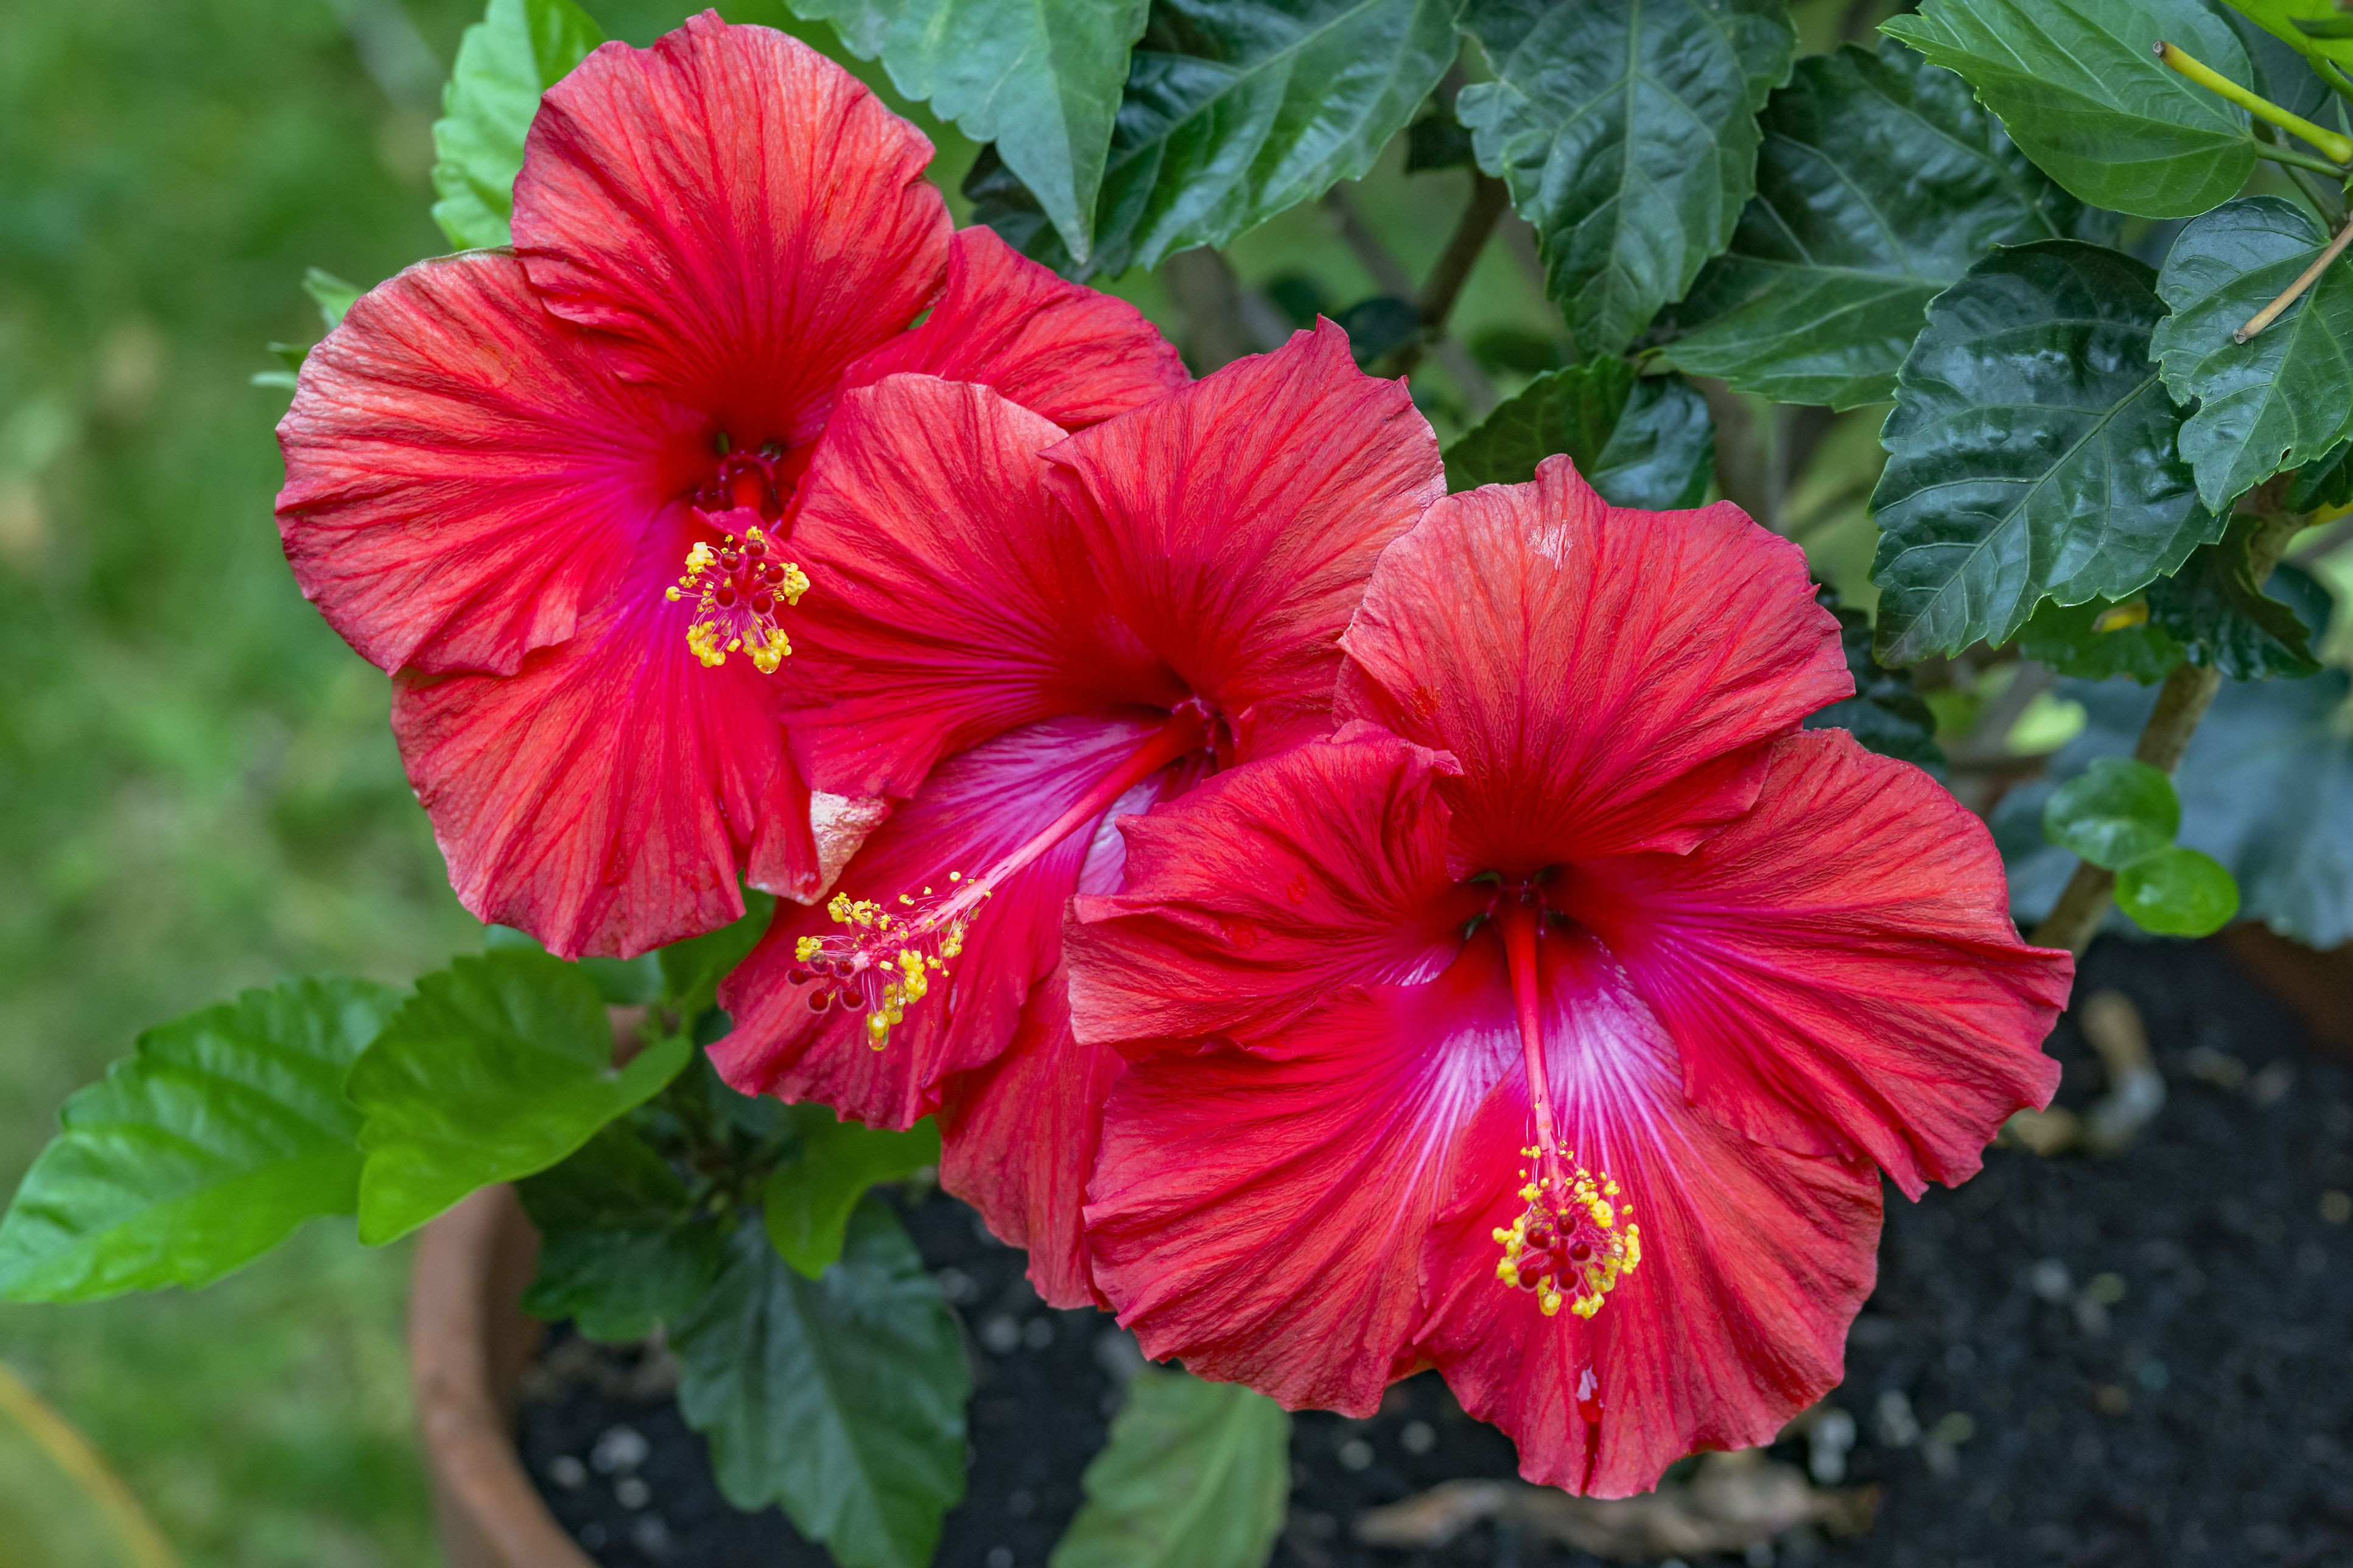 trio of vibrant red hibiscus flowers with bright yellow stigma growing in garden pot 5abea fa eef63e